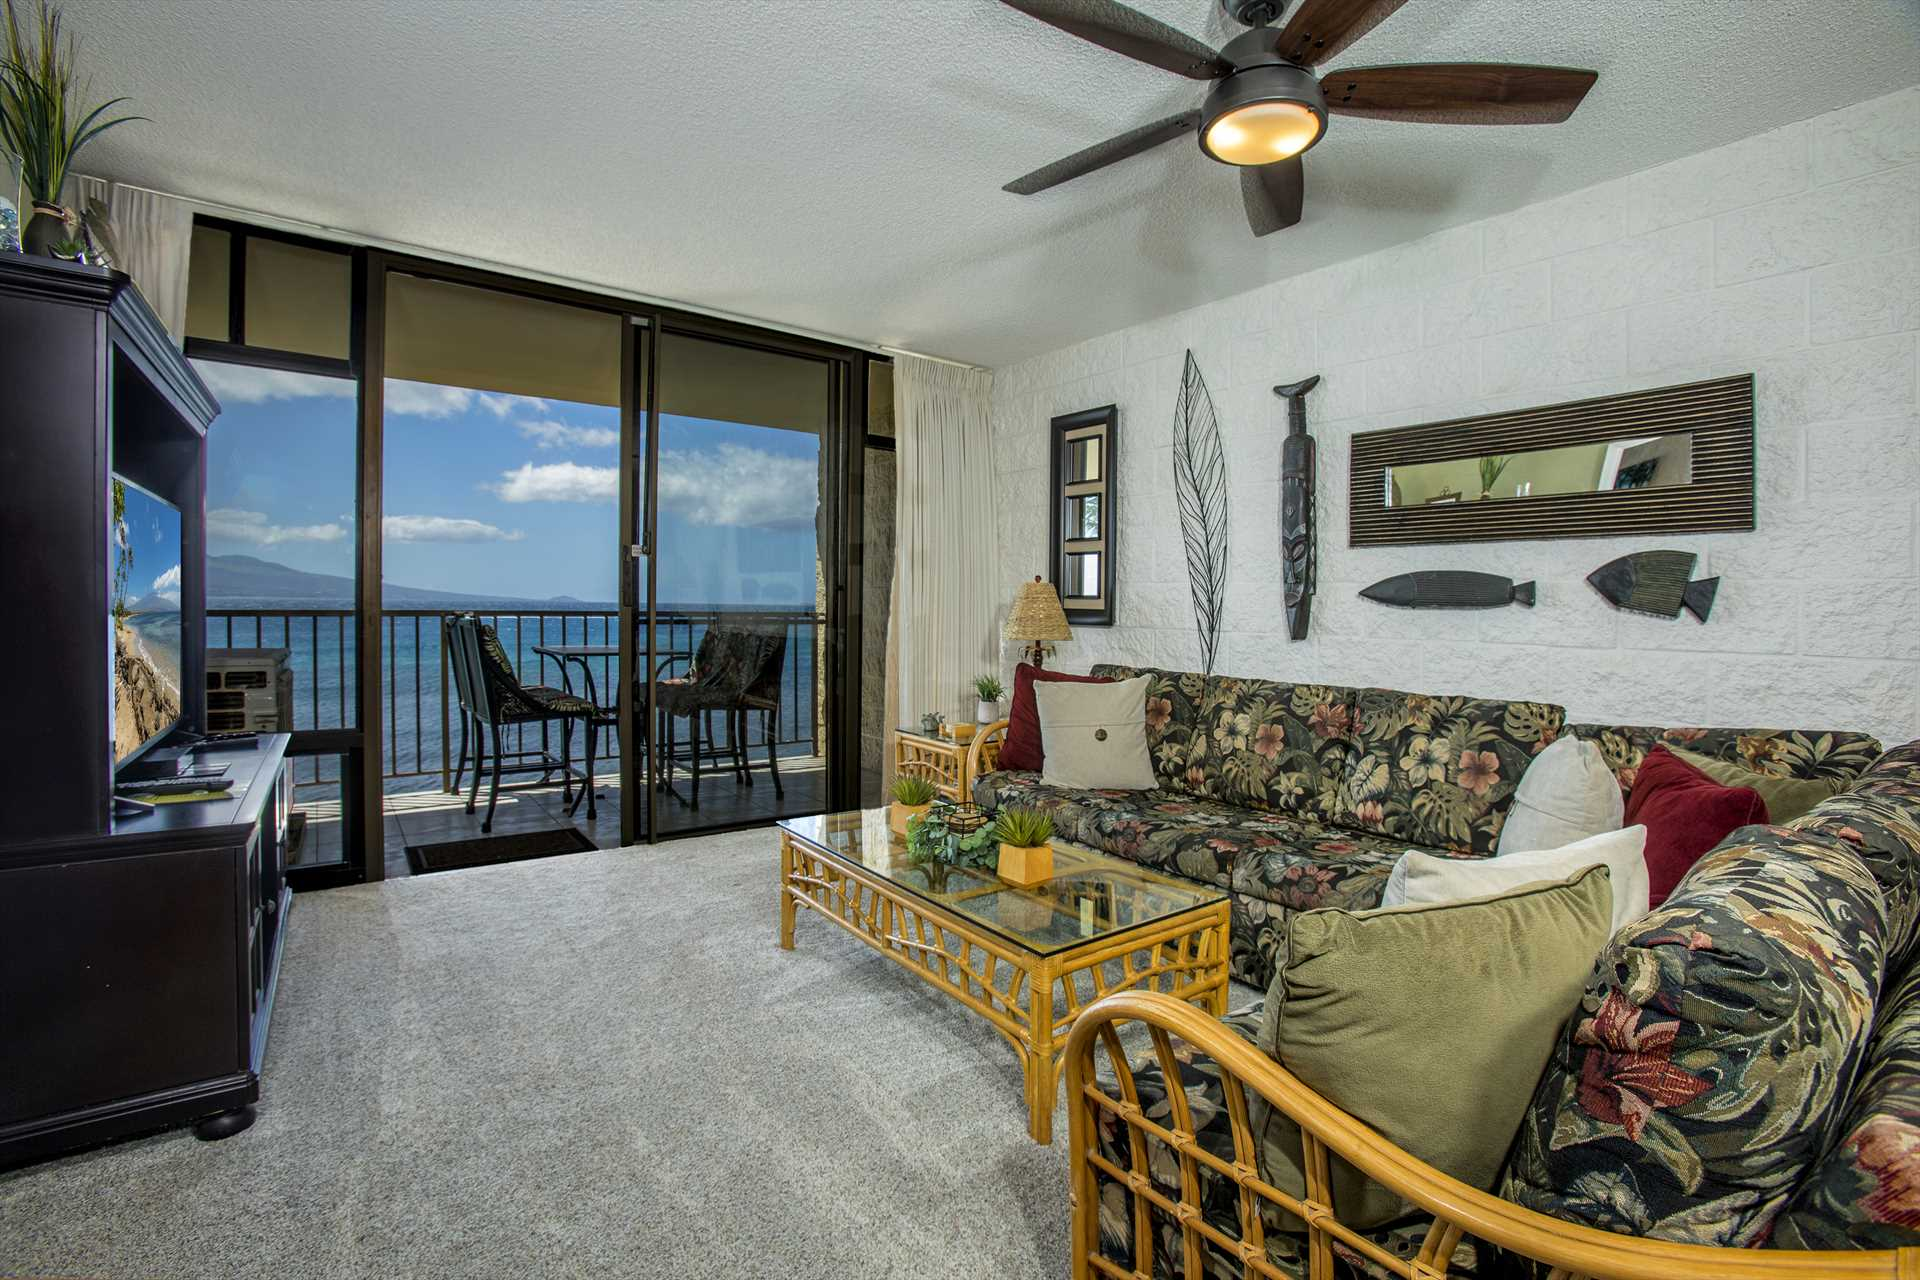 Living room with amazing views of island and ocean!